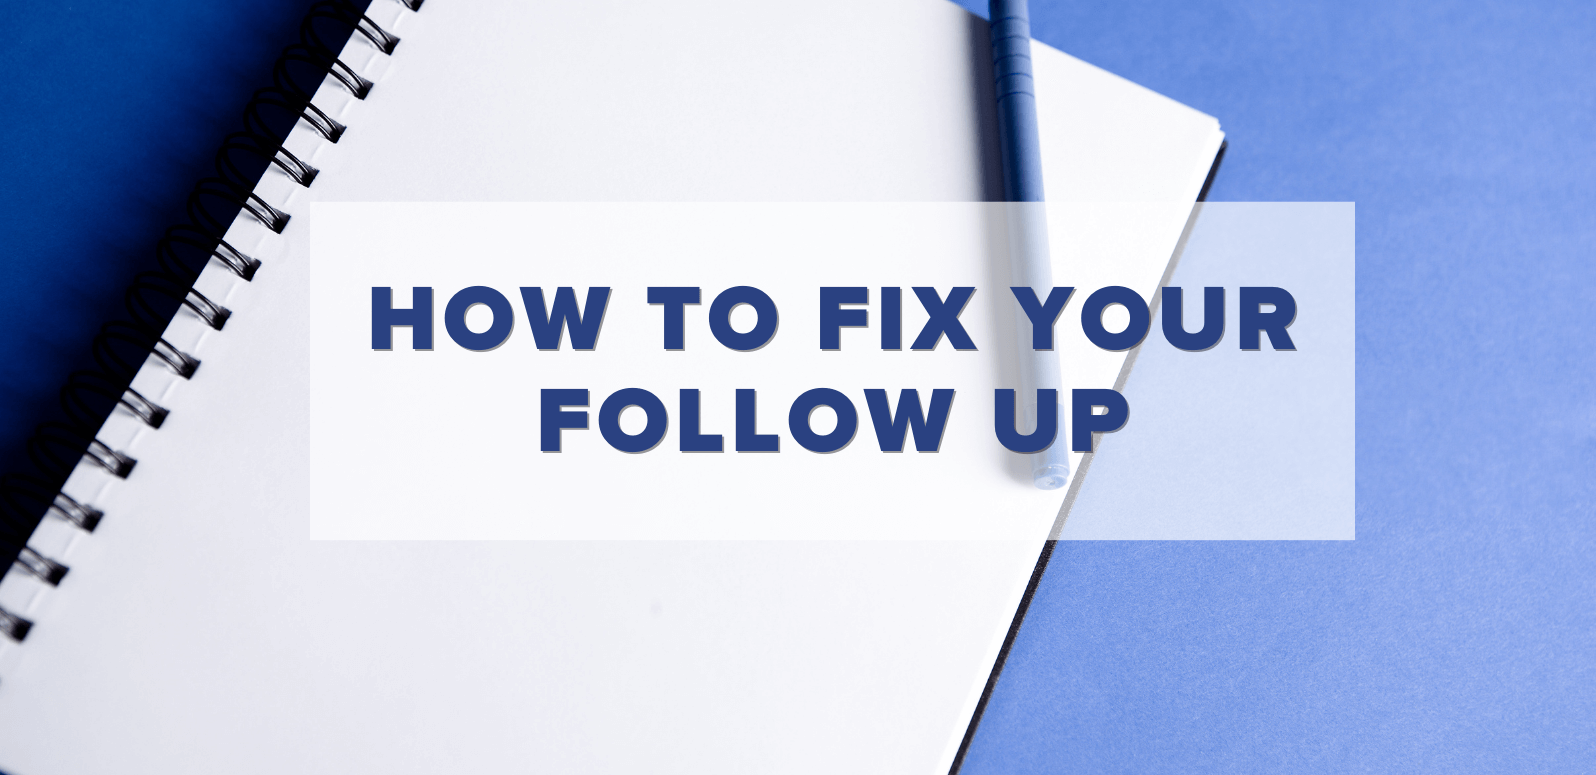 Is Your Real Estate Lead Follow Up System Broken? Here's How to Fix It